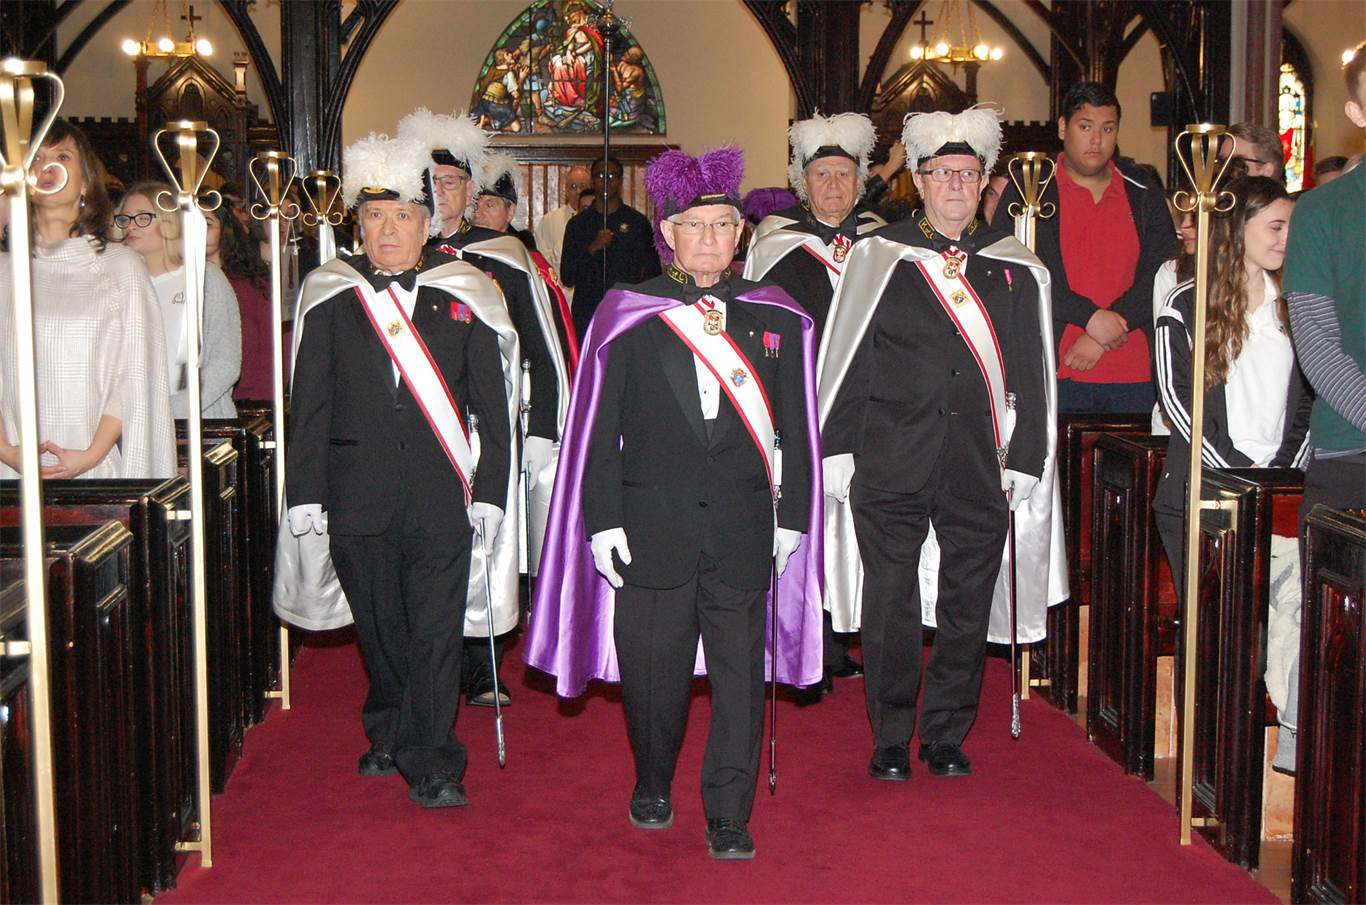 The Knights of Columbus provided an Honour Guard at the annual System-Wide Graduates' Mass at St. Mary Pro Cathedral on May 10th.